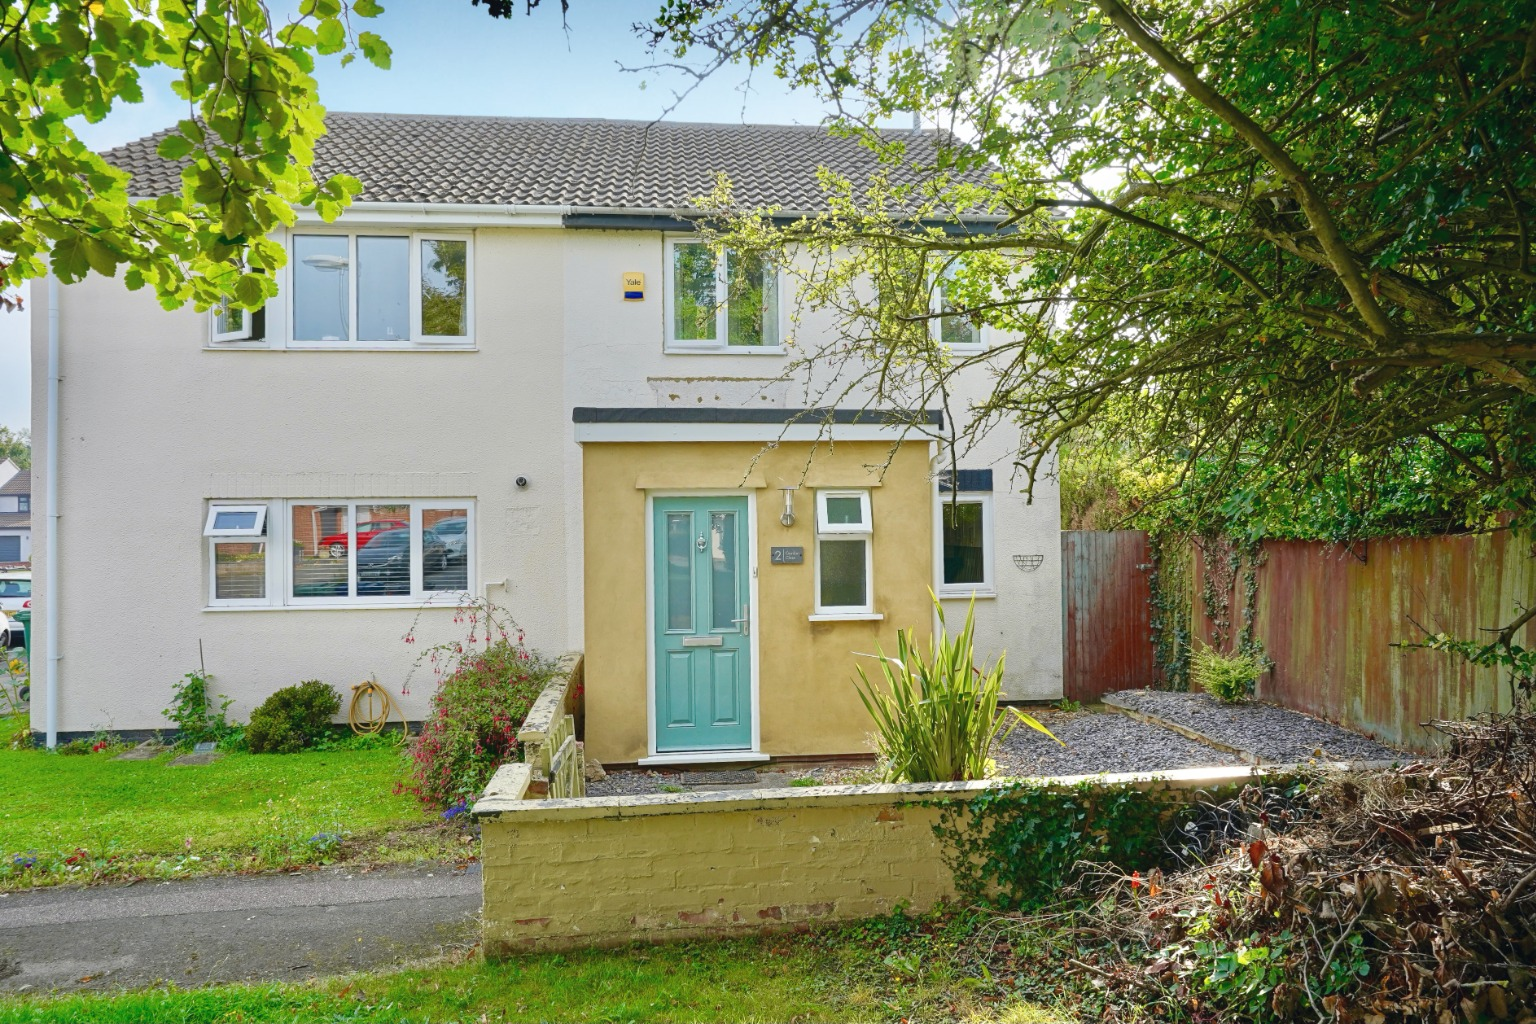 3 bed  for sale in Gordon Close, St. Neots, PE19